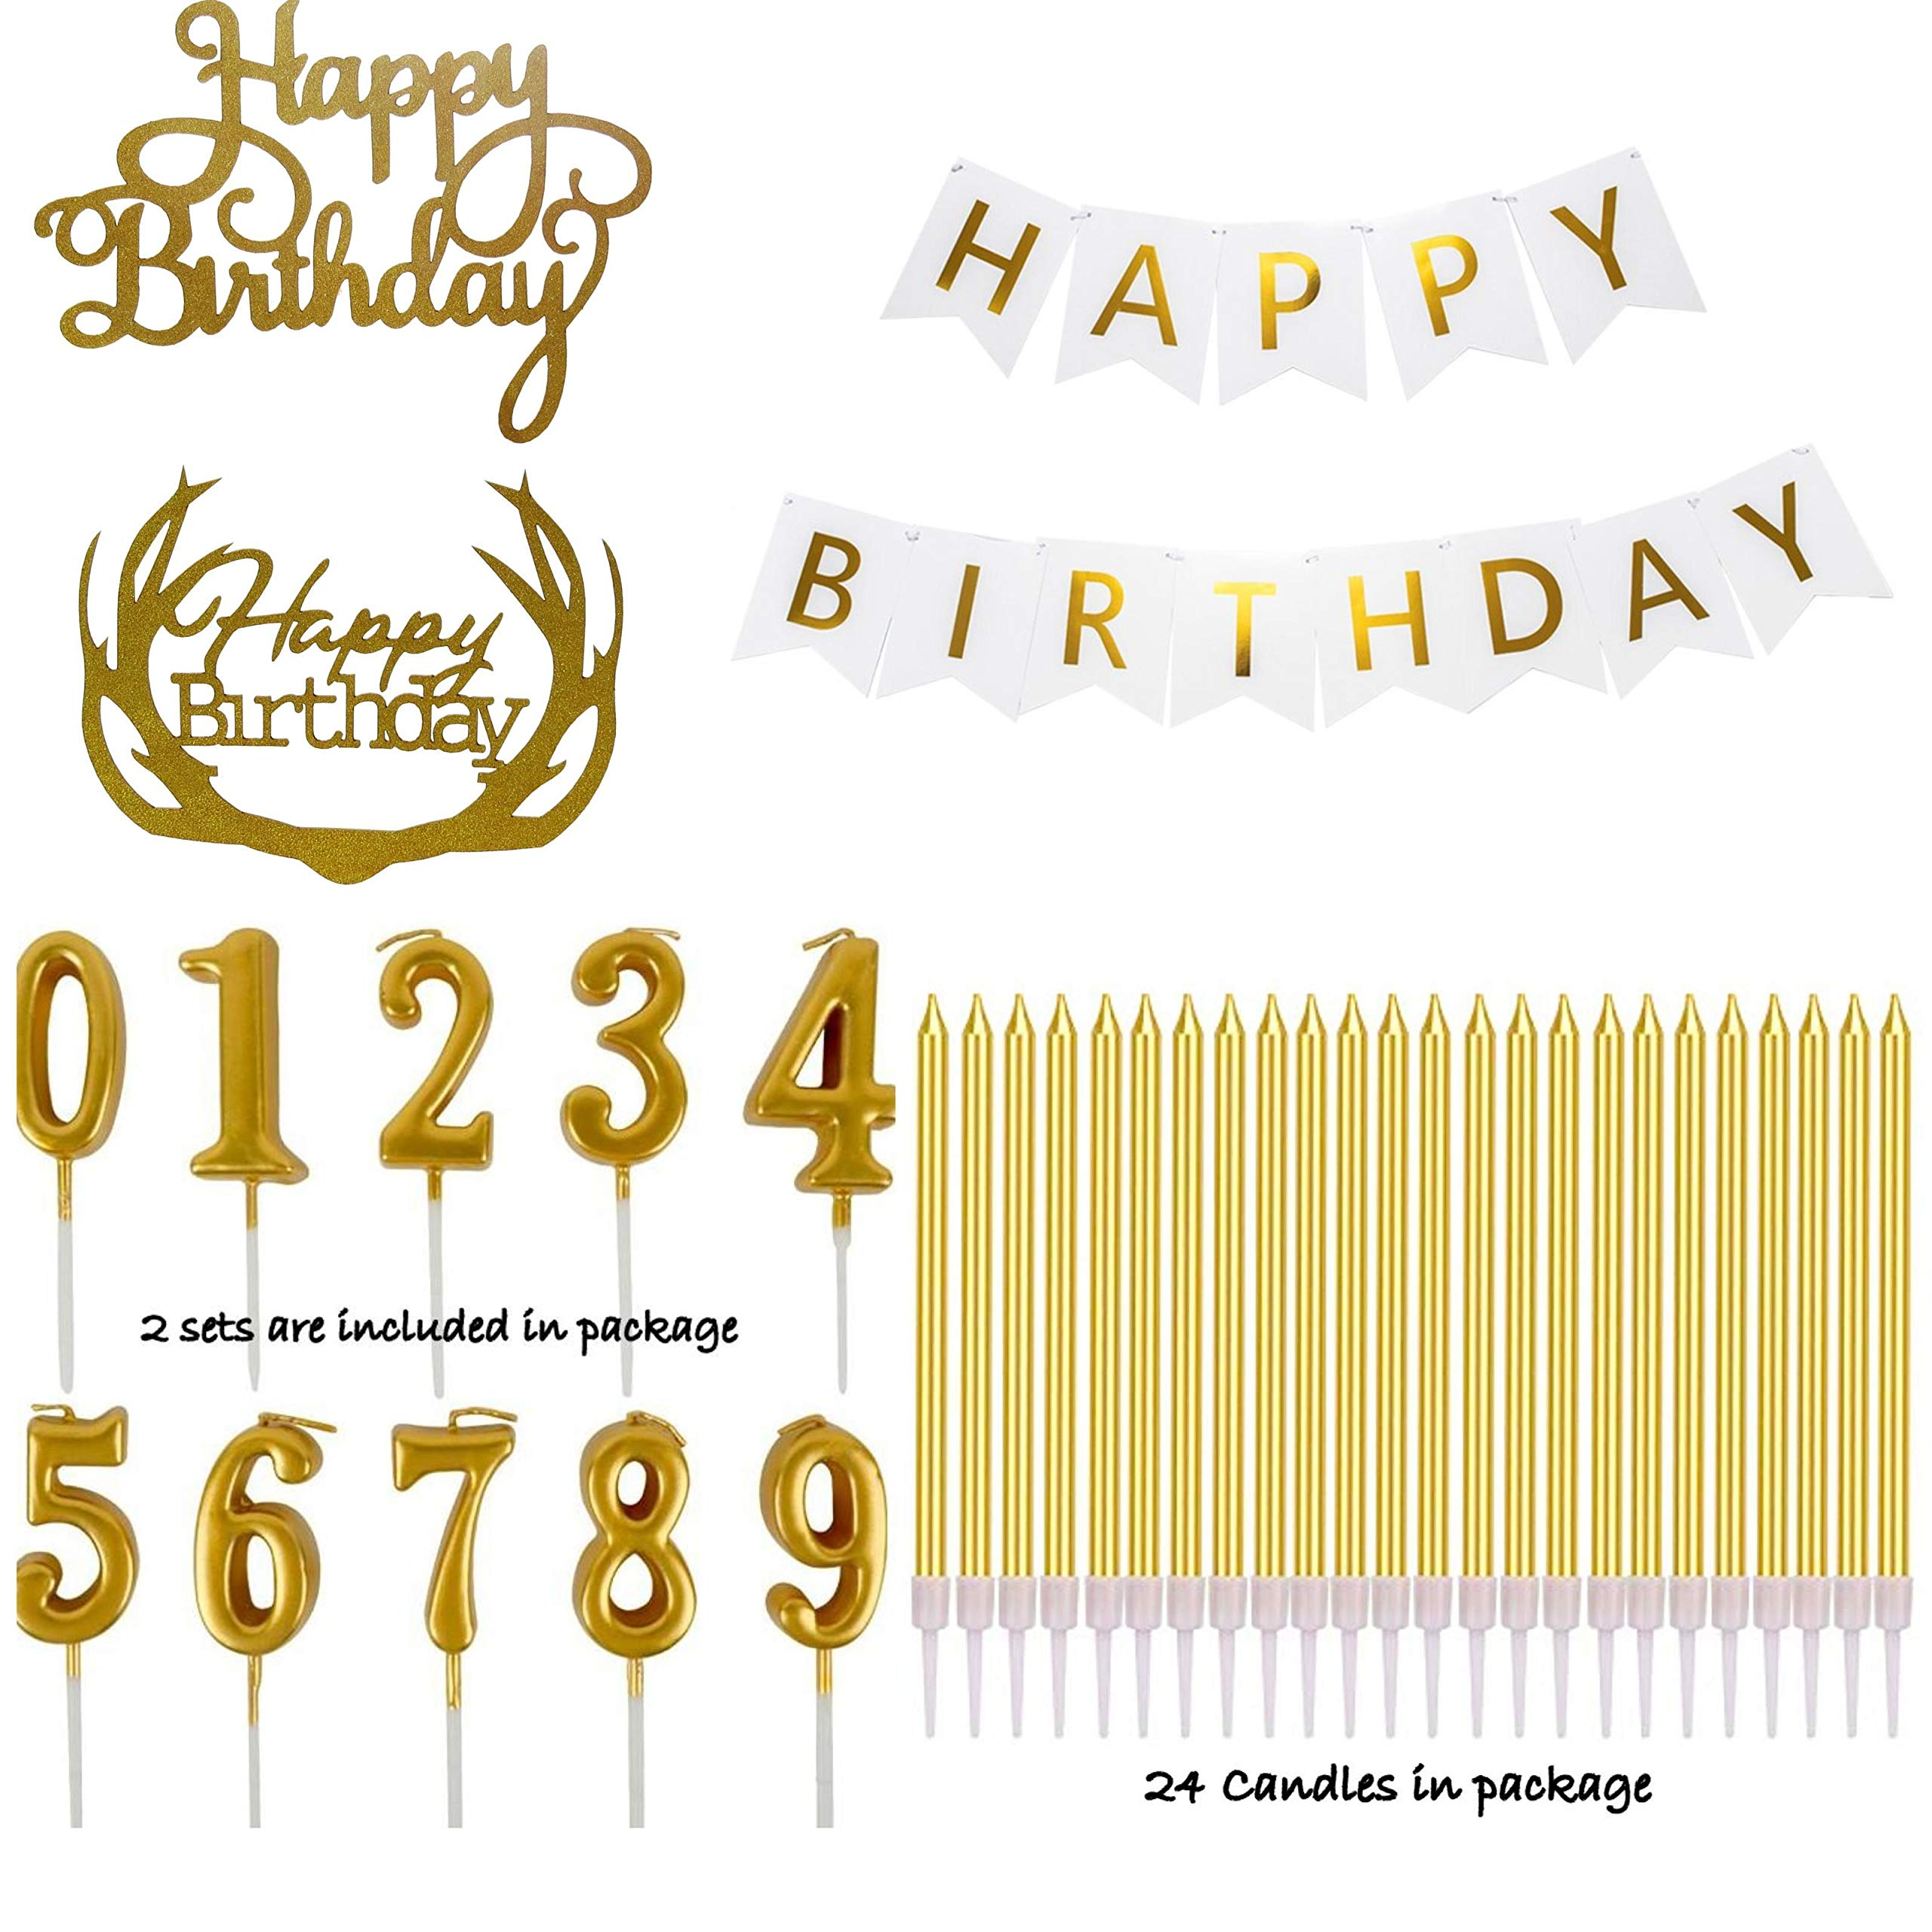 Happy Birthday Banner, Number Candles, Tall Gold Sparkle Candle, Cake Topper - Decorations Party Supplies For Women Men Boys Girls